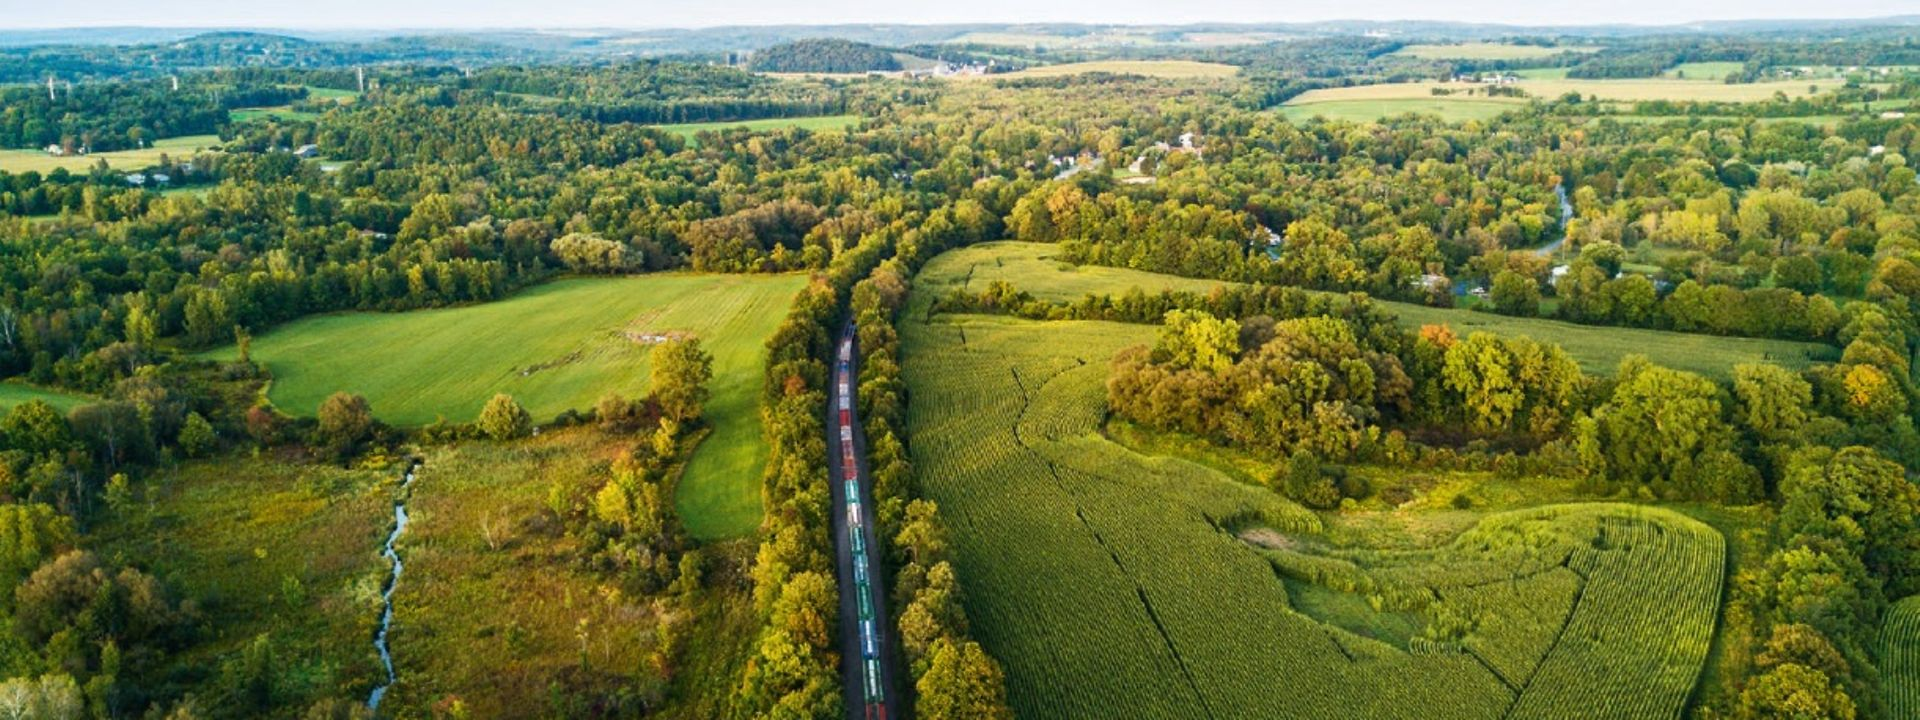 Train in green landscape from air perspective